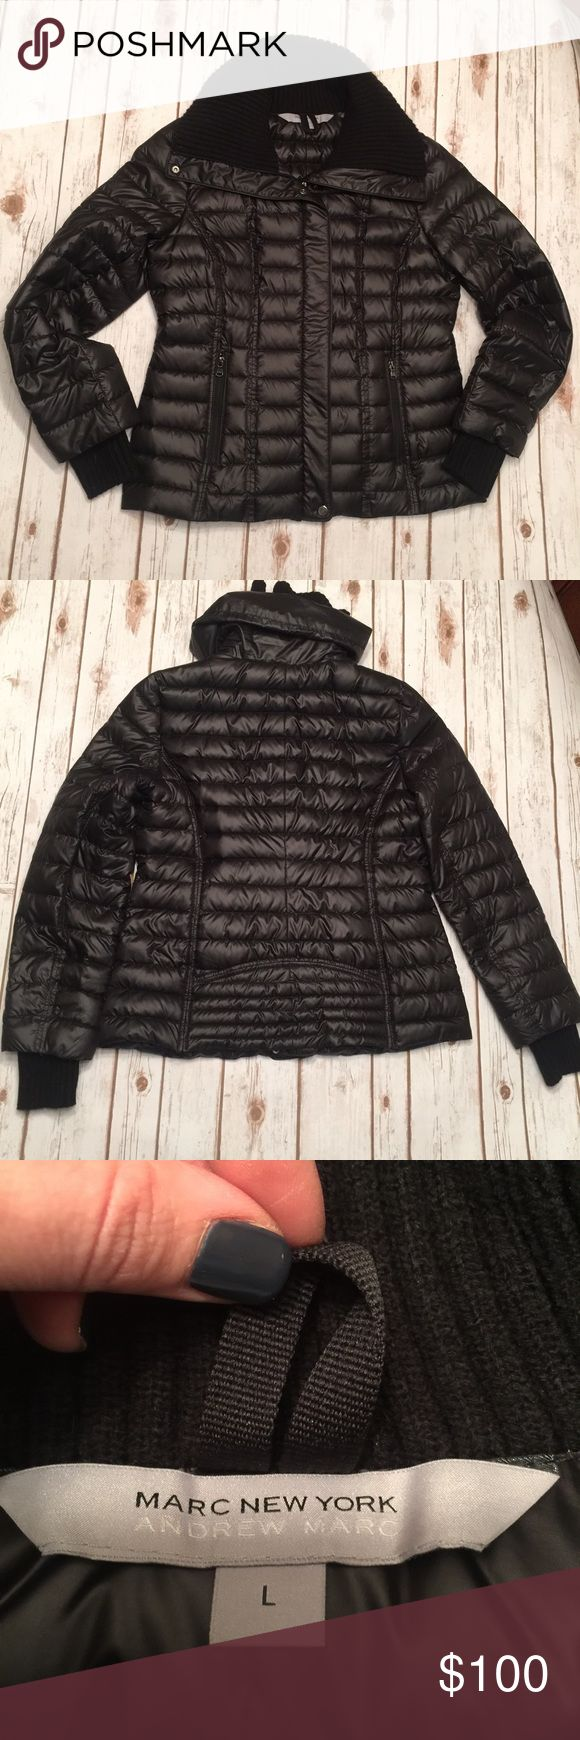 ⛄️MARC NEW YORK- ANDREW MARC Down Puffer Jacket NWOT.  Never worn.  Very warm jacket!  Fits comfortably on 36C chest.  Purchased at Bloomingdales. Andrew Marc Jackets & Coats Puffers